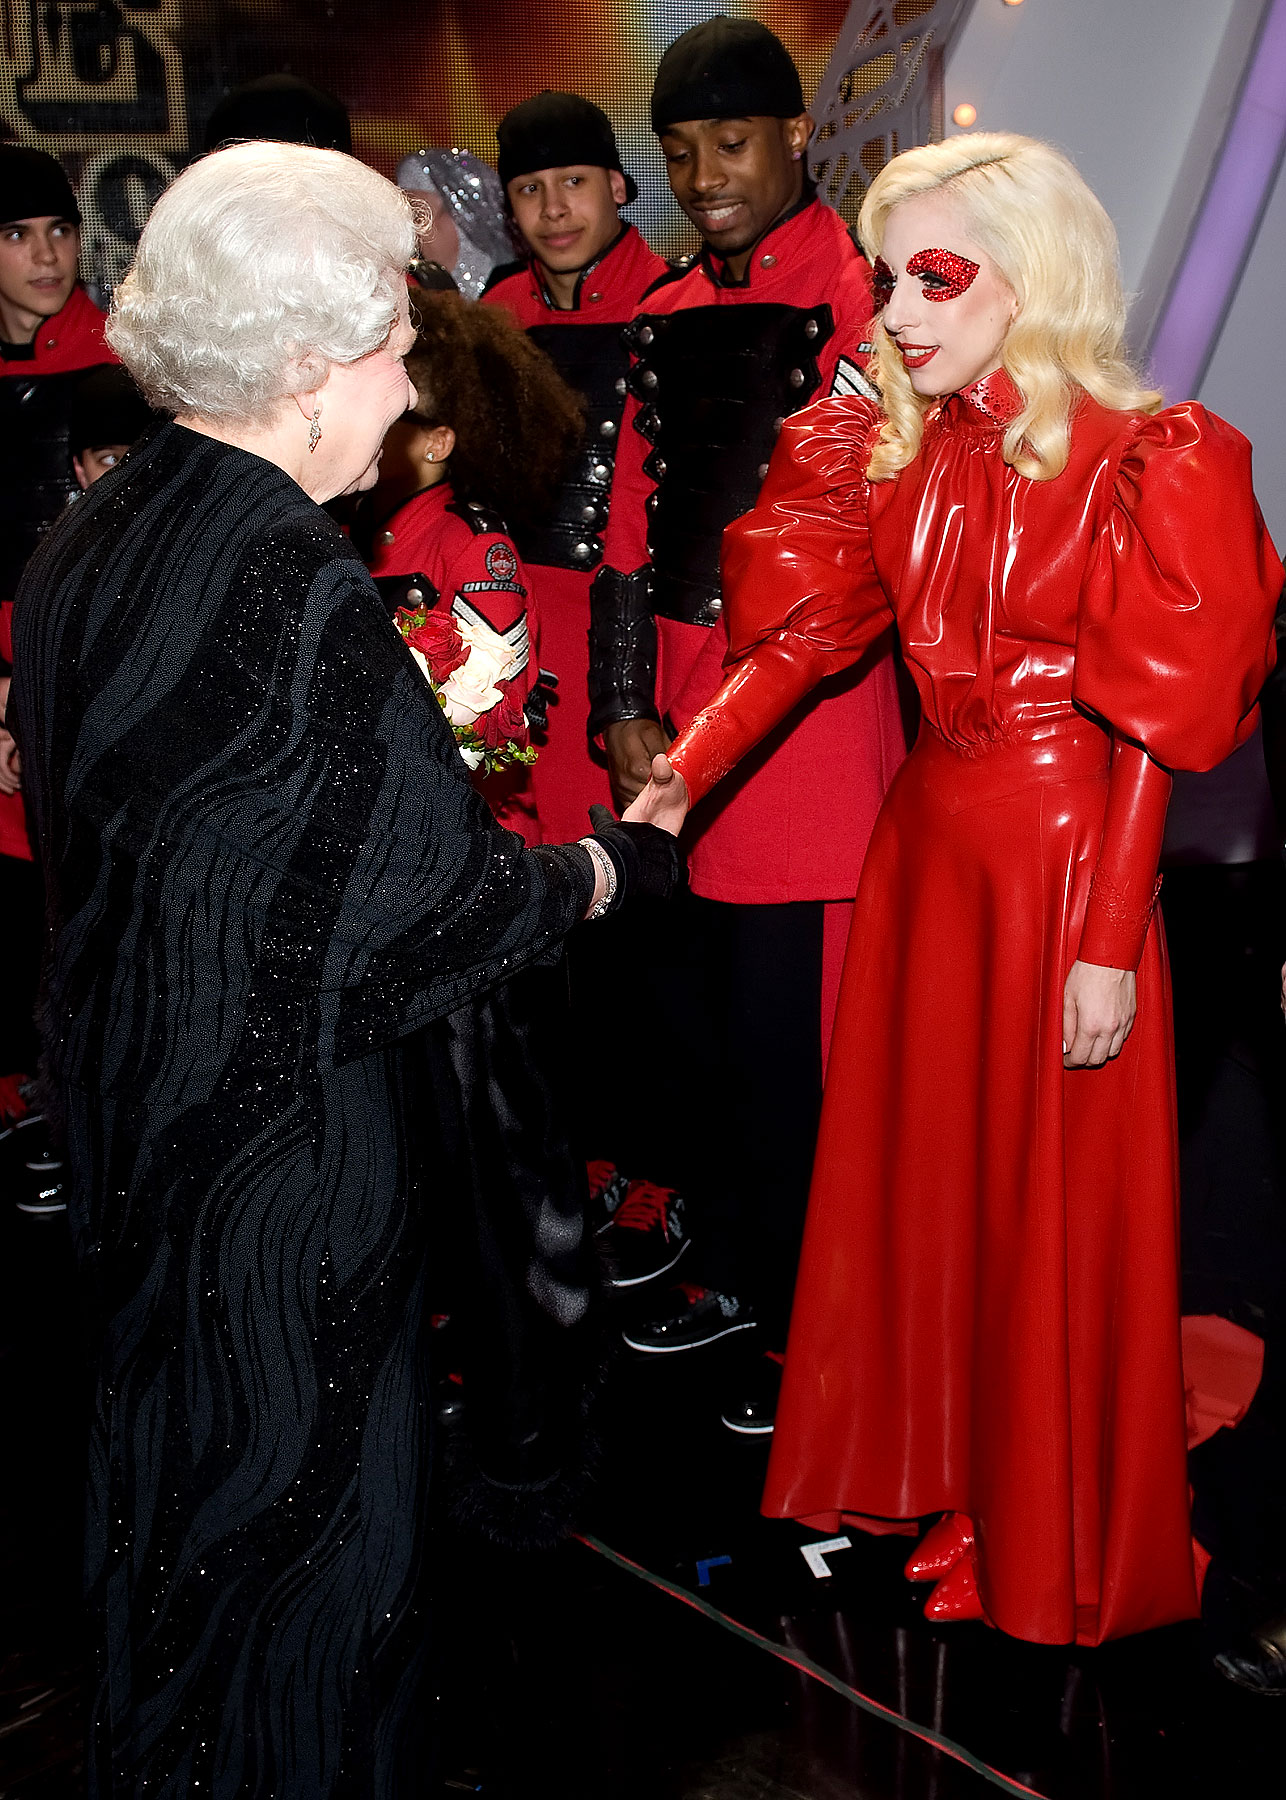 Lady Gaga Meets the Queen, Exposes Major Hole in Royal Family's Security Detail (PHOTOS)